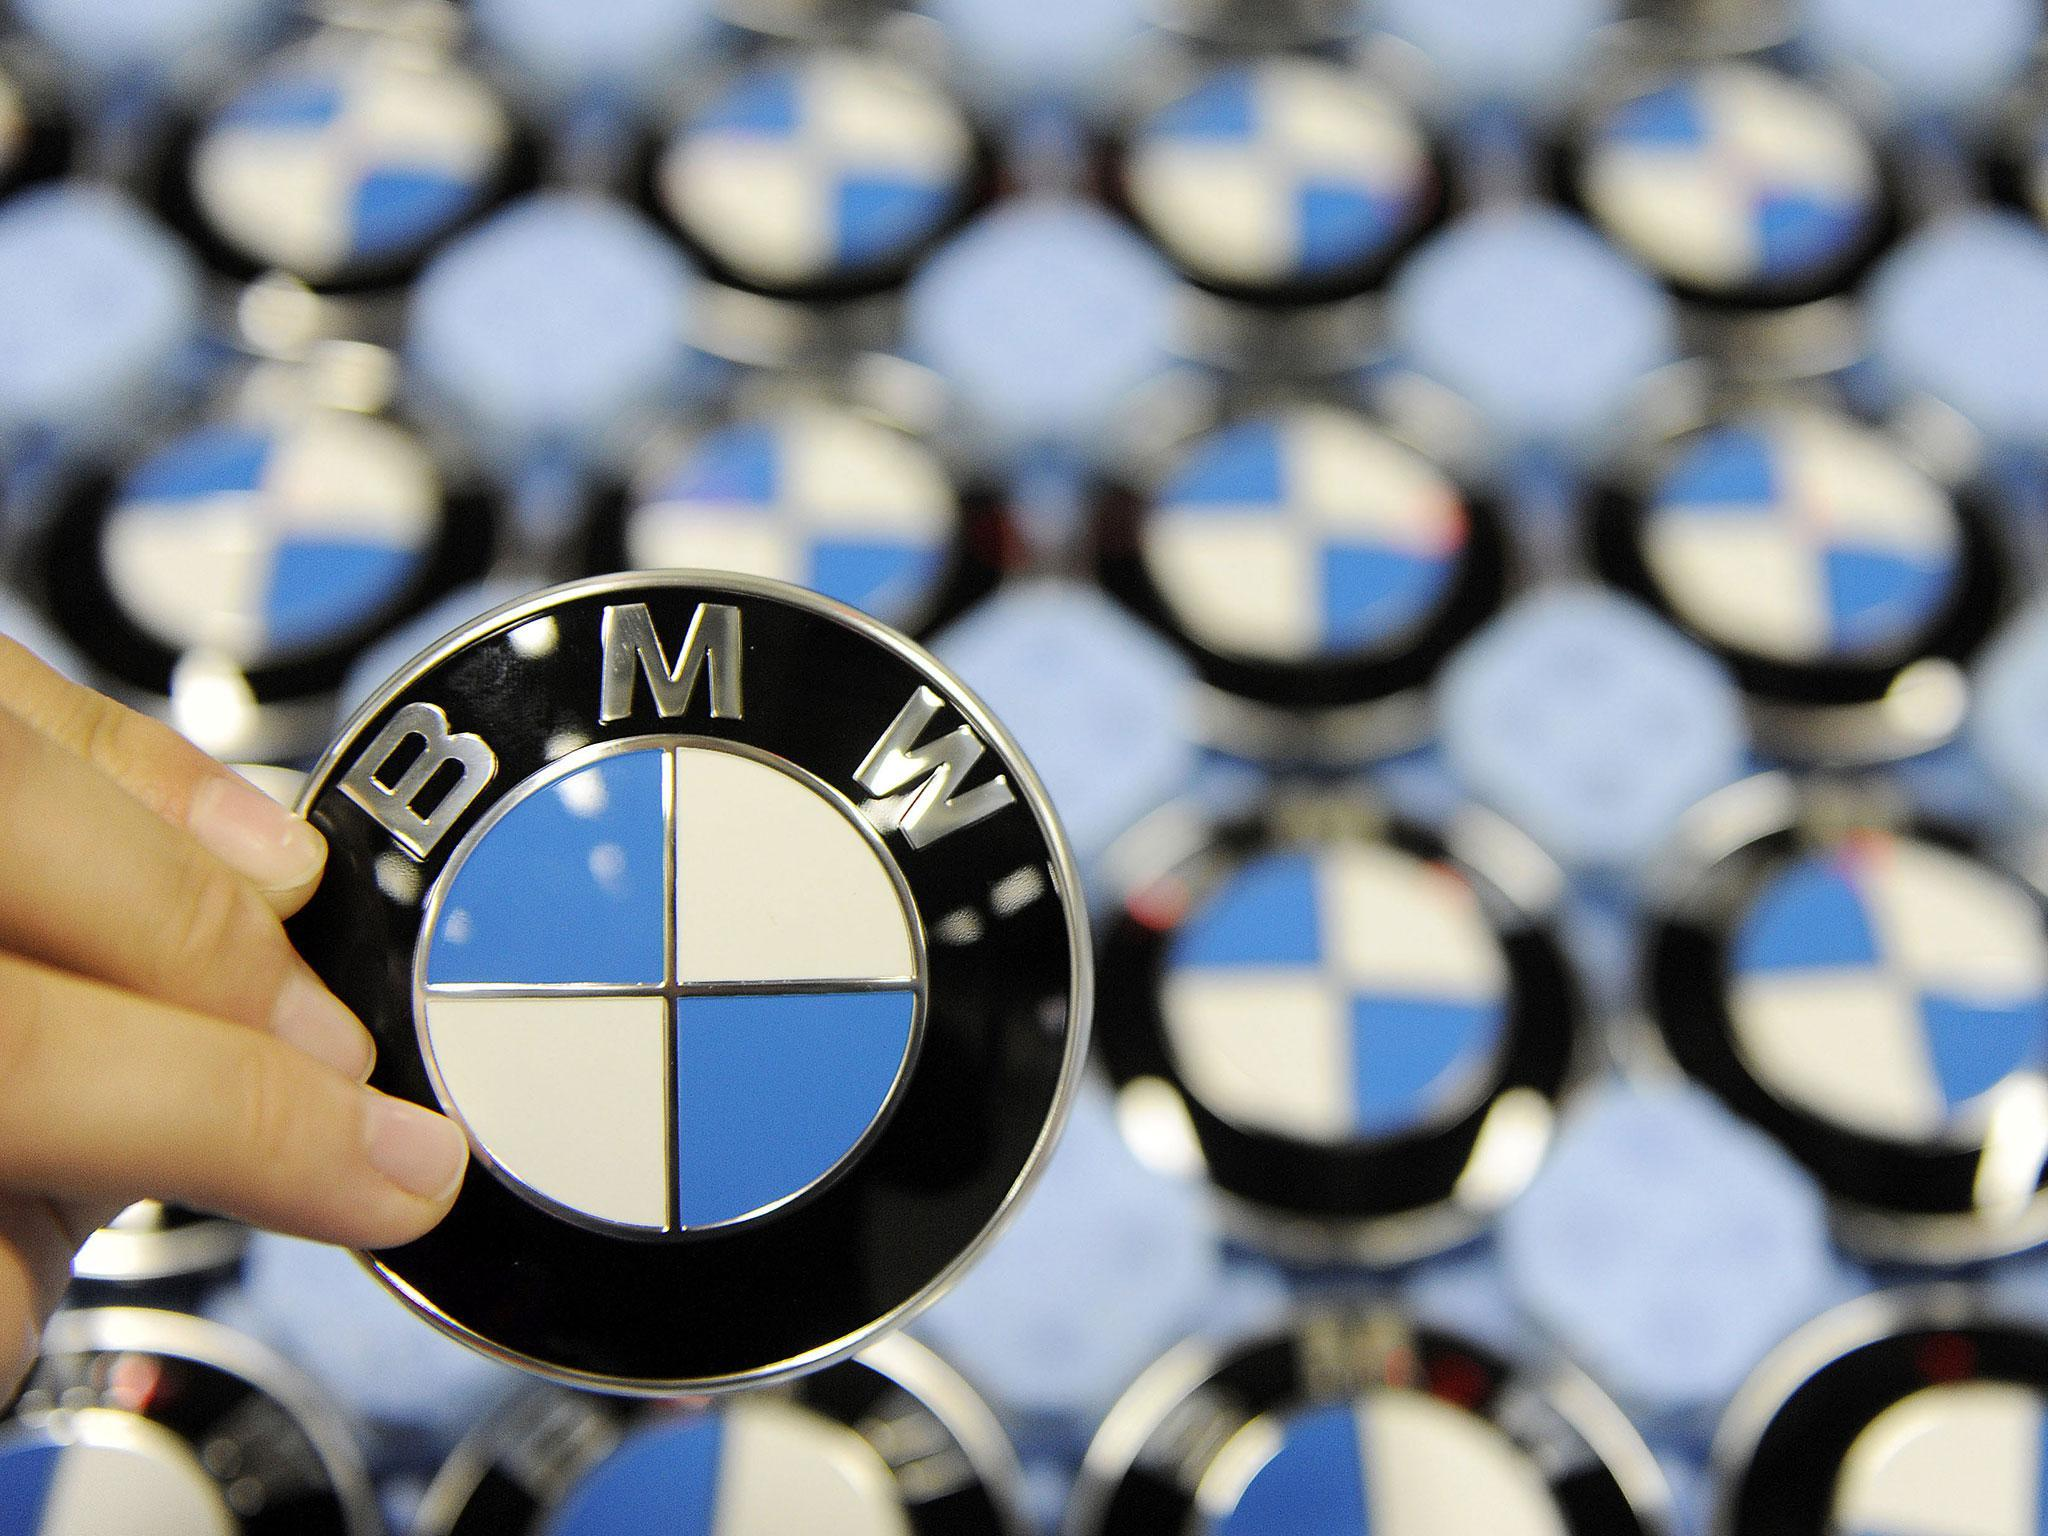 BMW 'commits' to new Mexico car plant despite Donald Trump's border tax threats